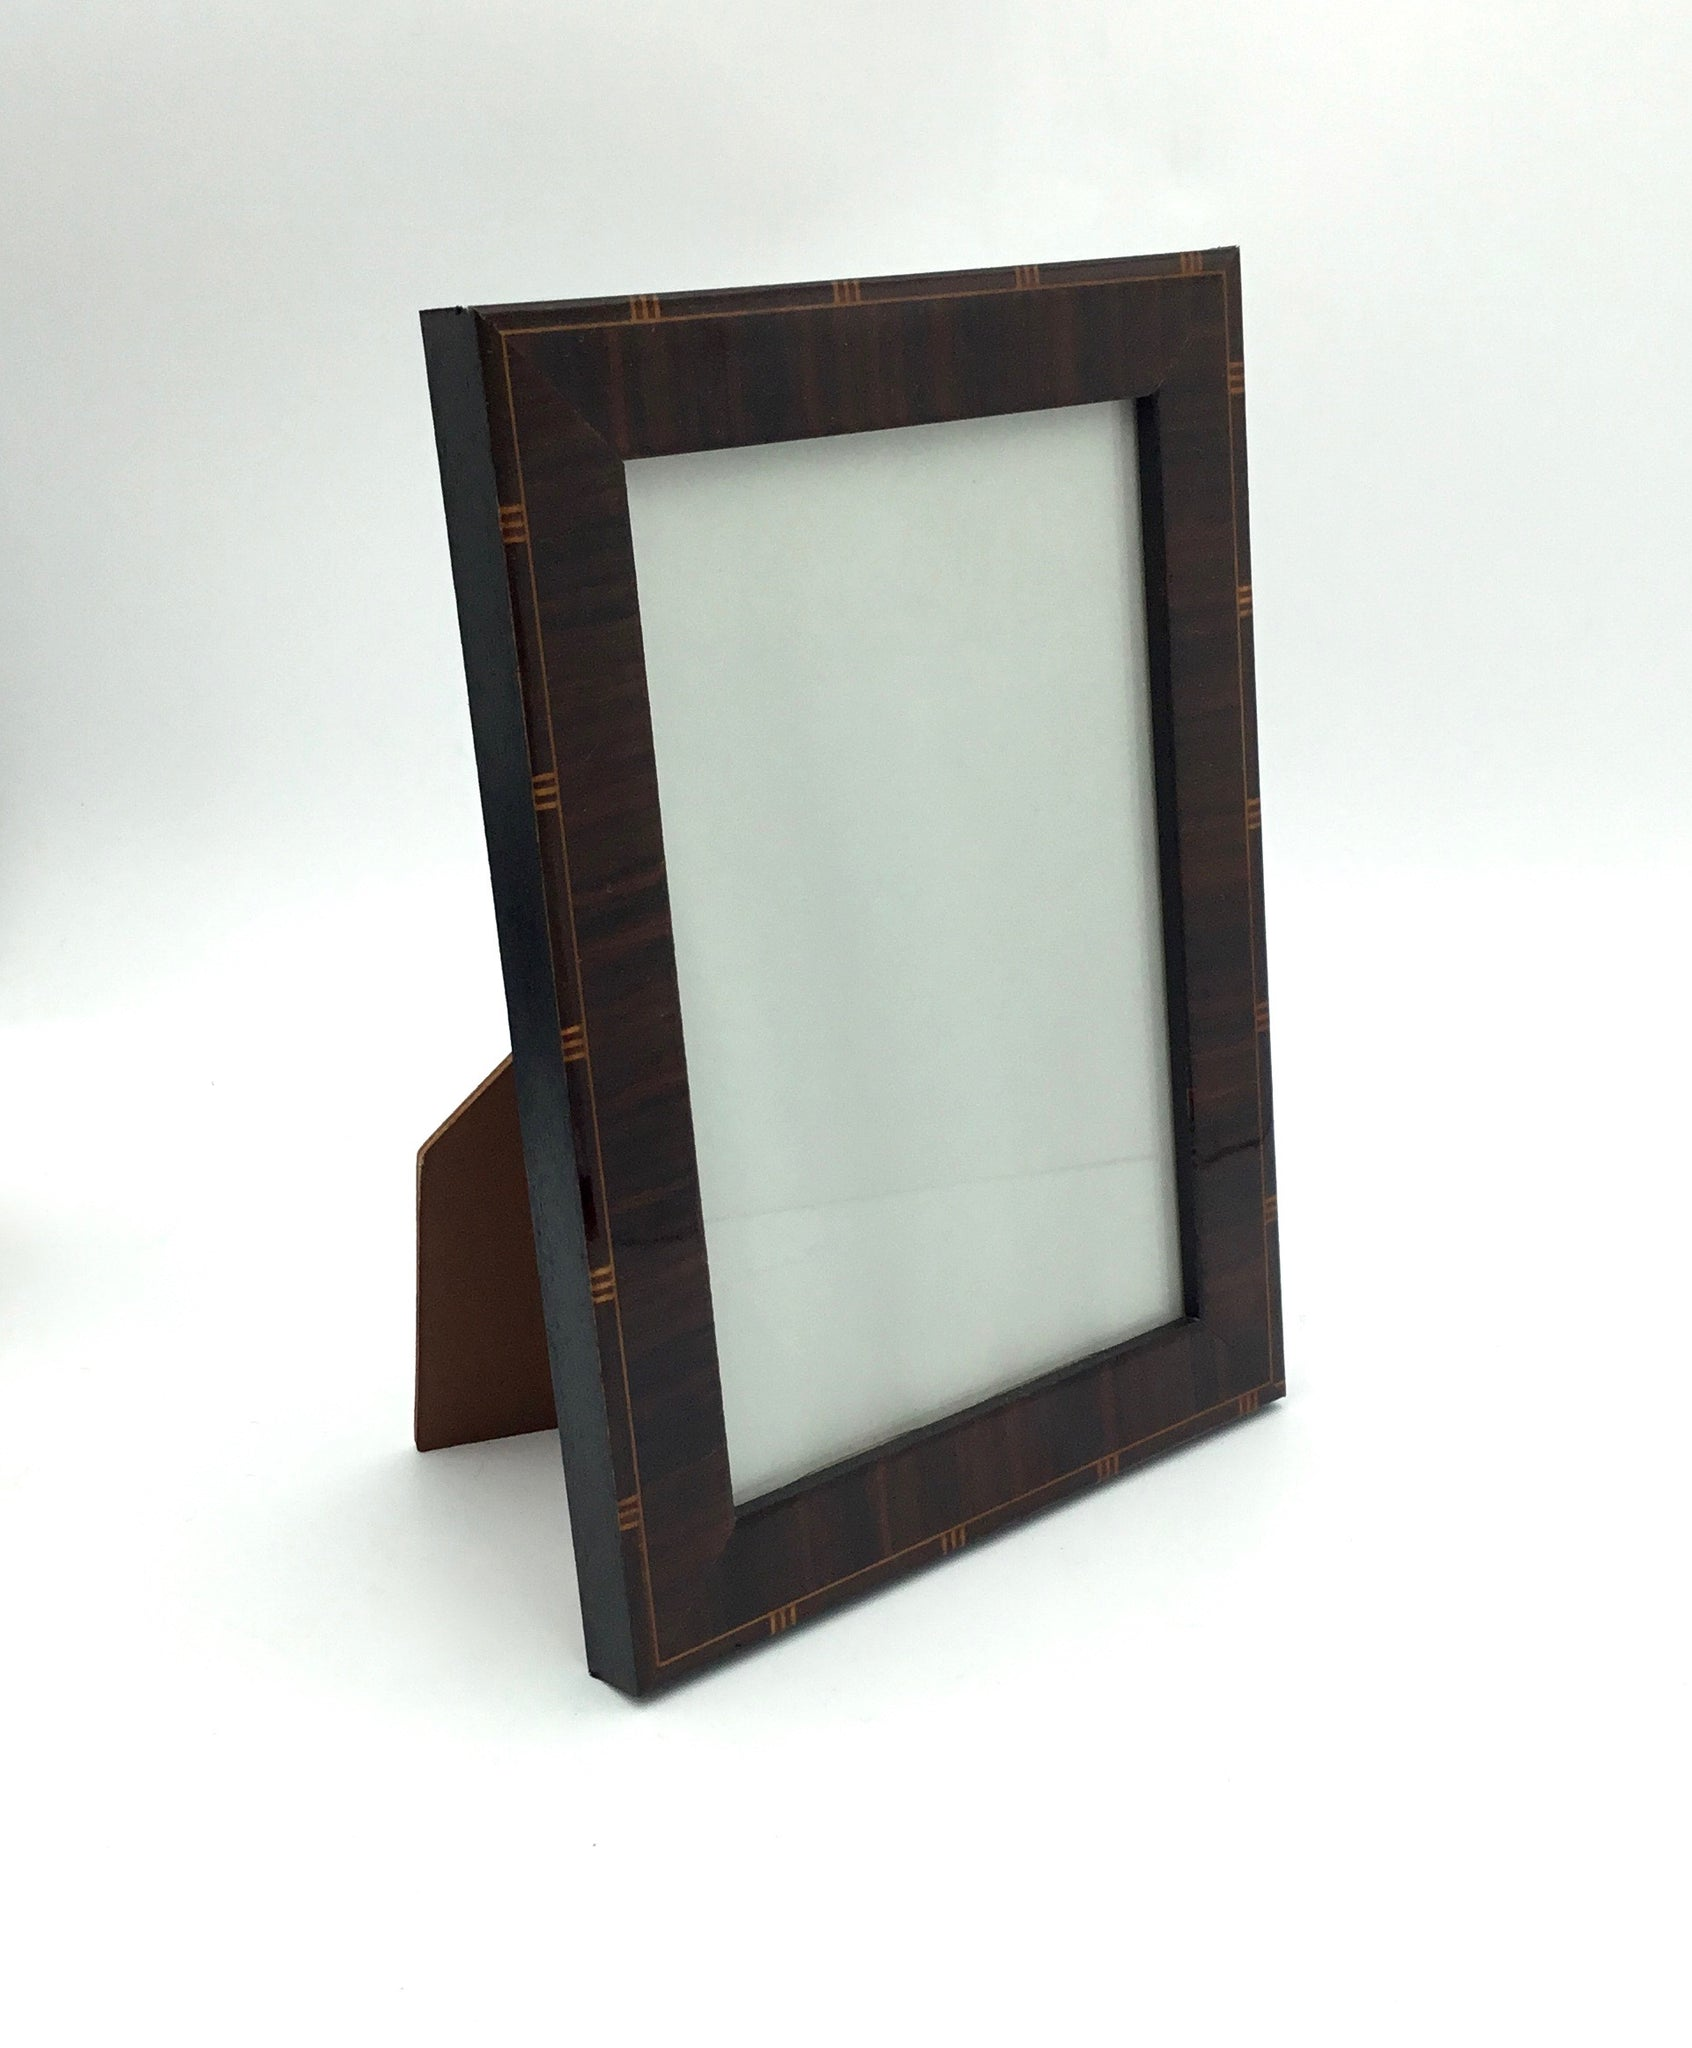 Tizo Picture Frame with Dark Wood Inlay